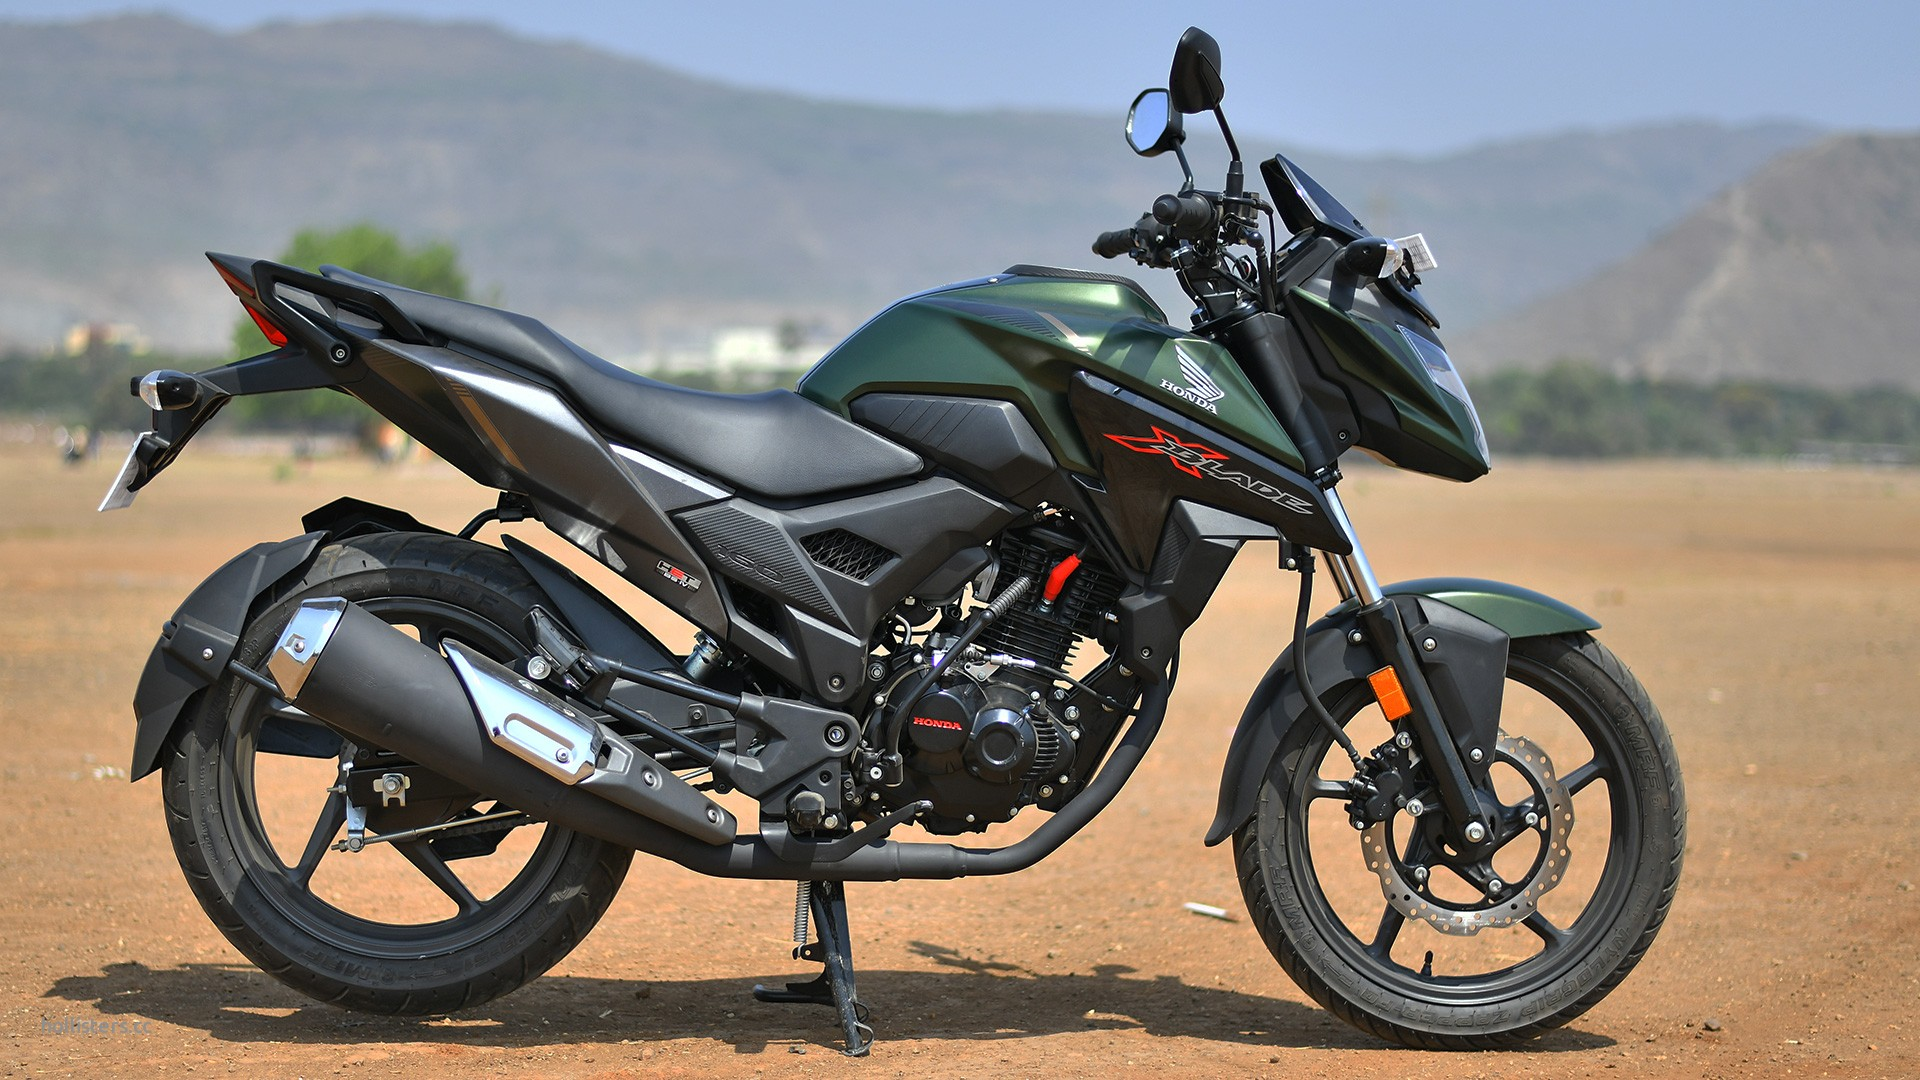 Honda Model Hrr2167vka Blades Awesome Honda X Blade 2018 Price Mileage Reviews Specification Gallery Honda